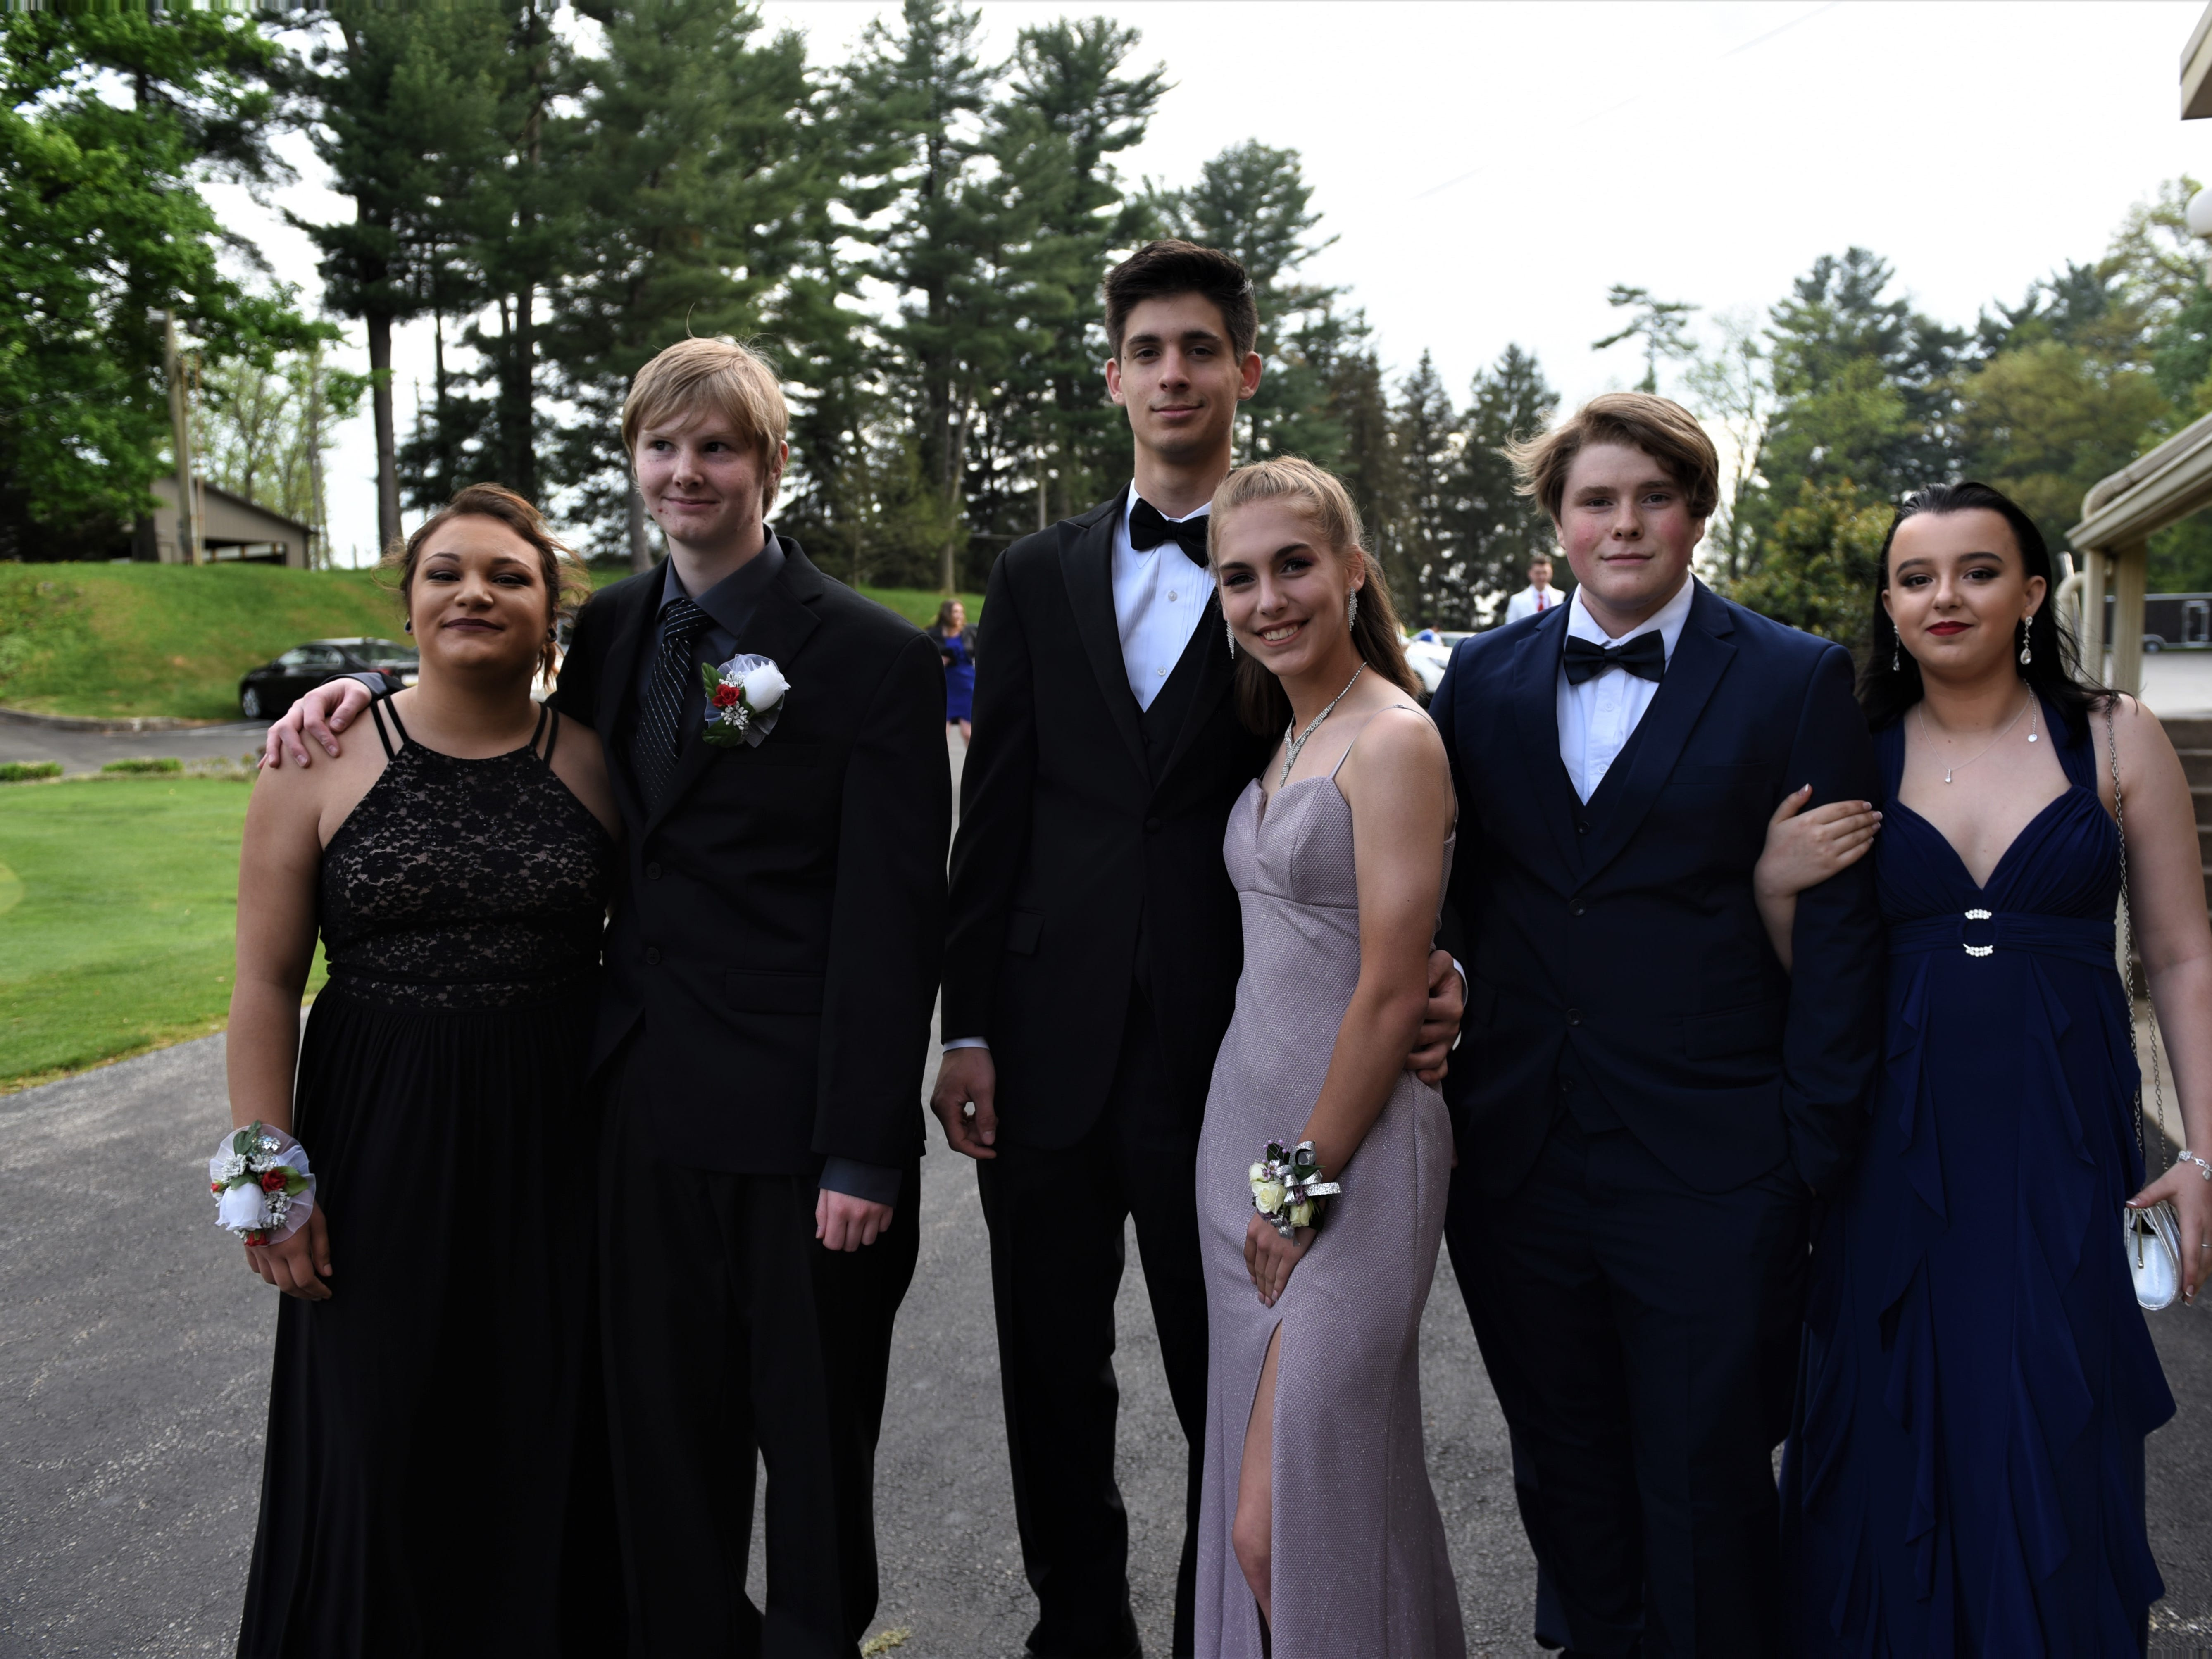 Hanover High School students arrive to their '20s-themed prom night at the Hanover Country Club in Abbottstown on May 3, 2019.